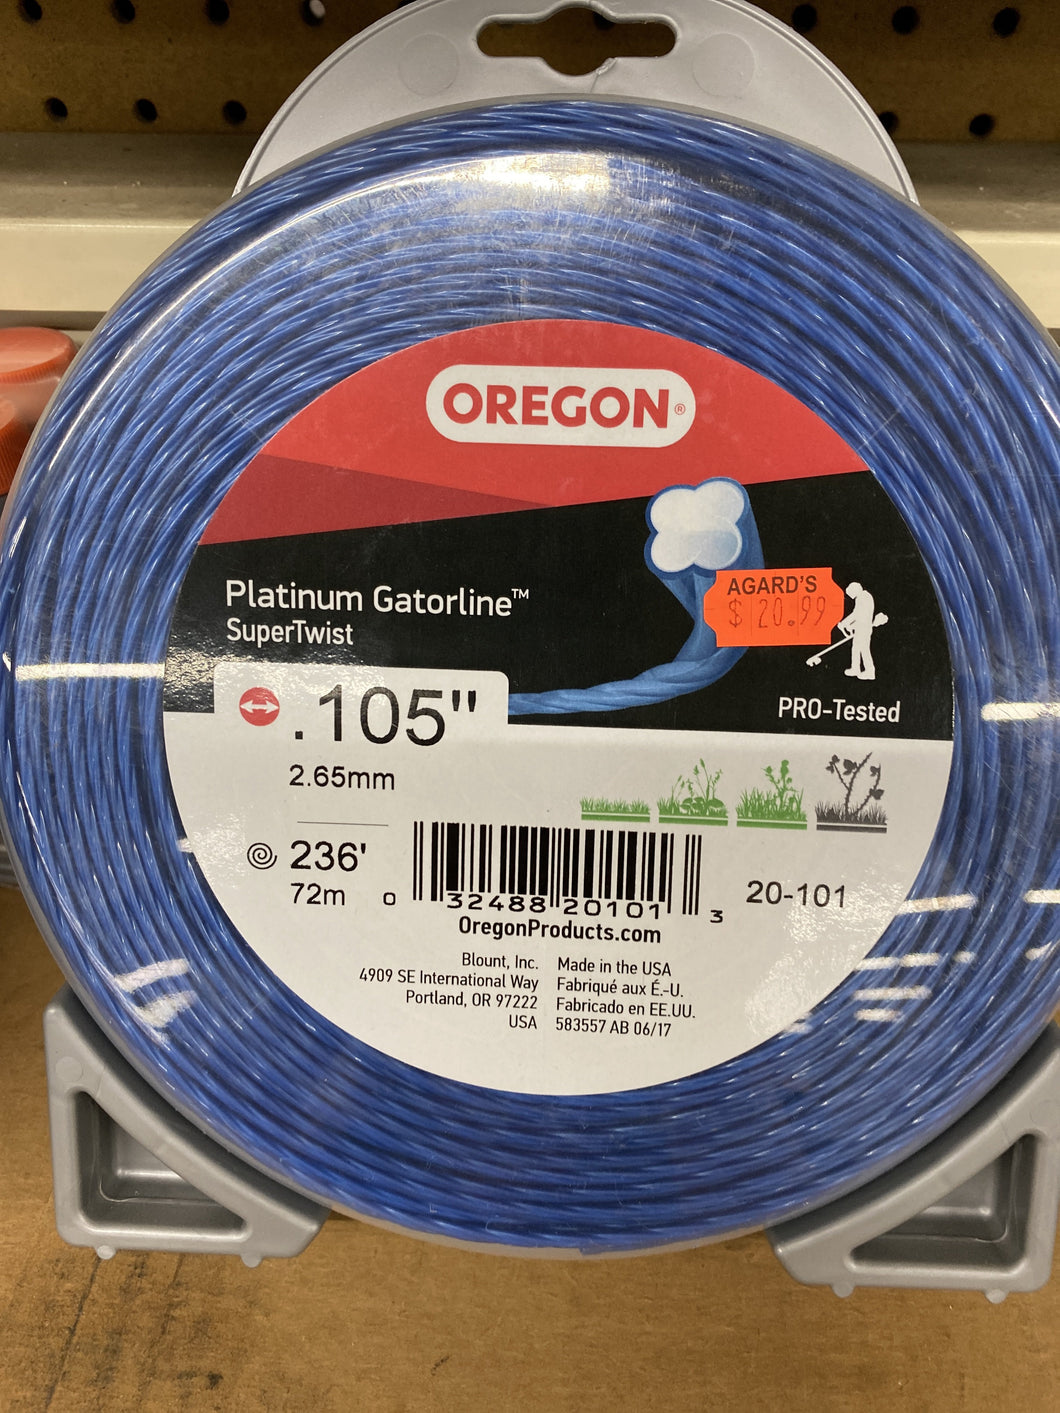 Oregon Platinum Gatorline Supertwist .105""